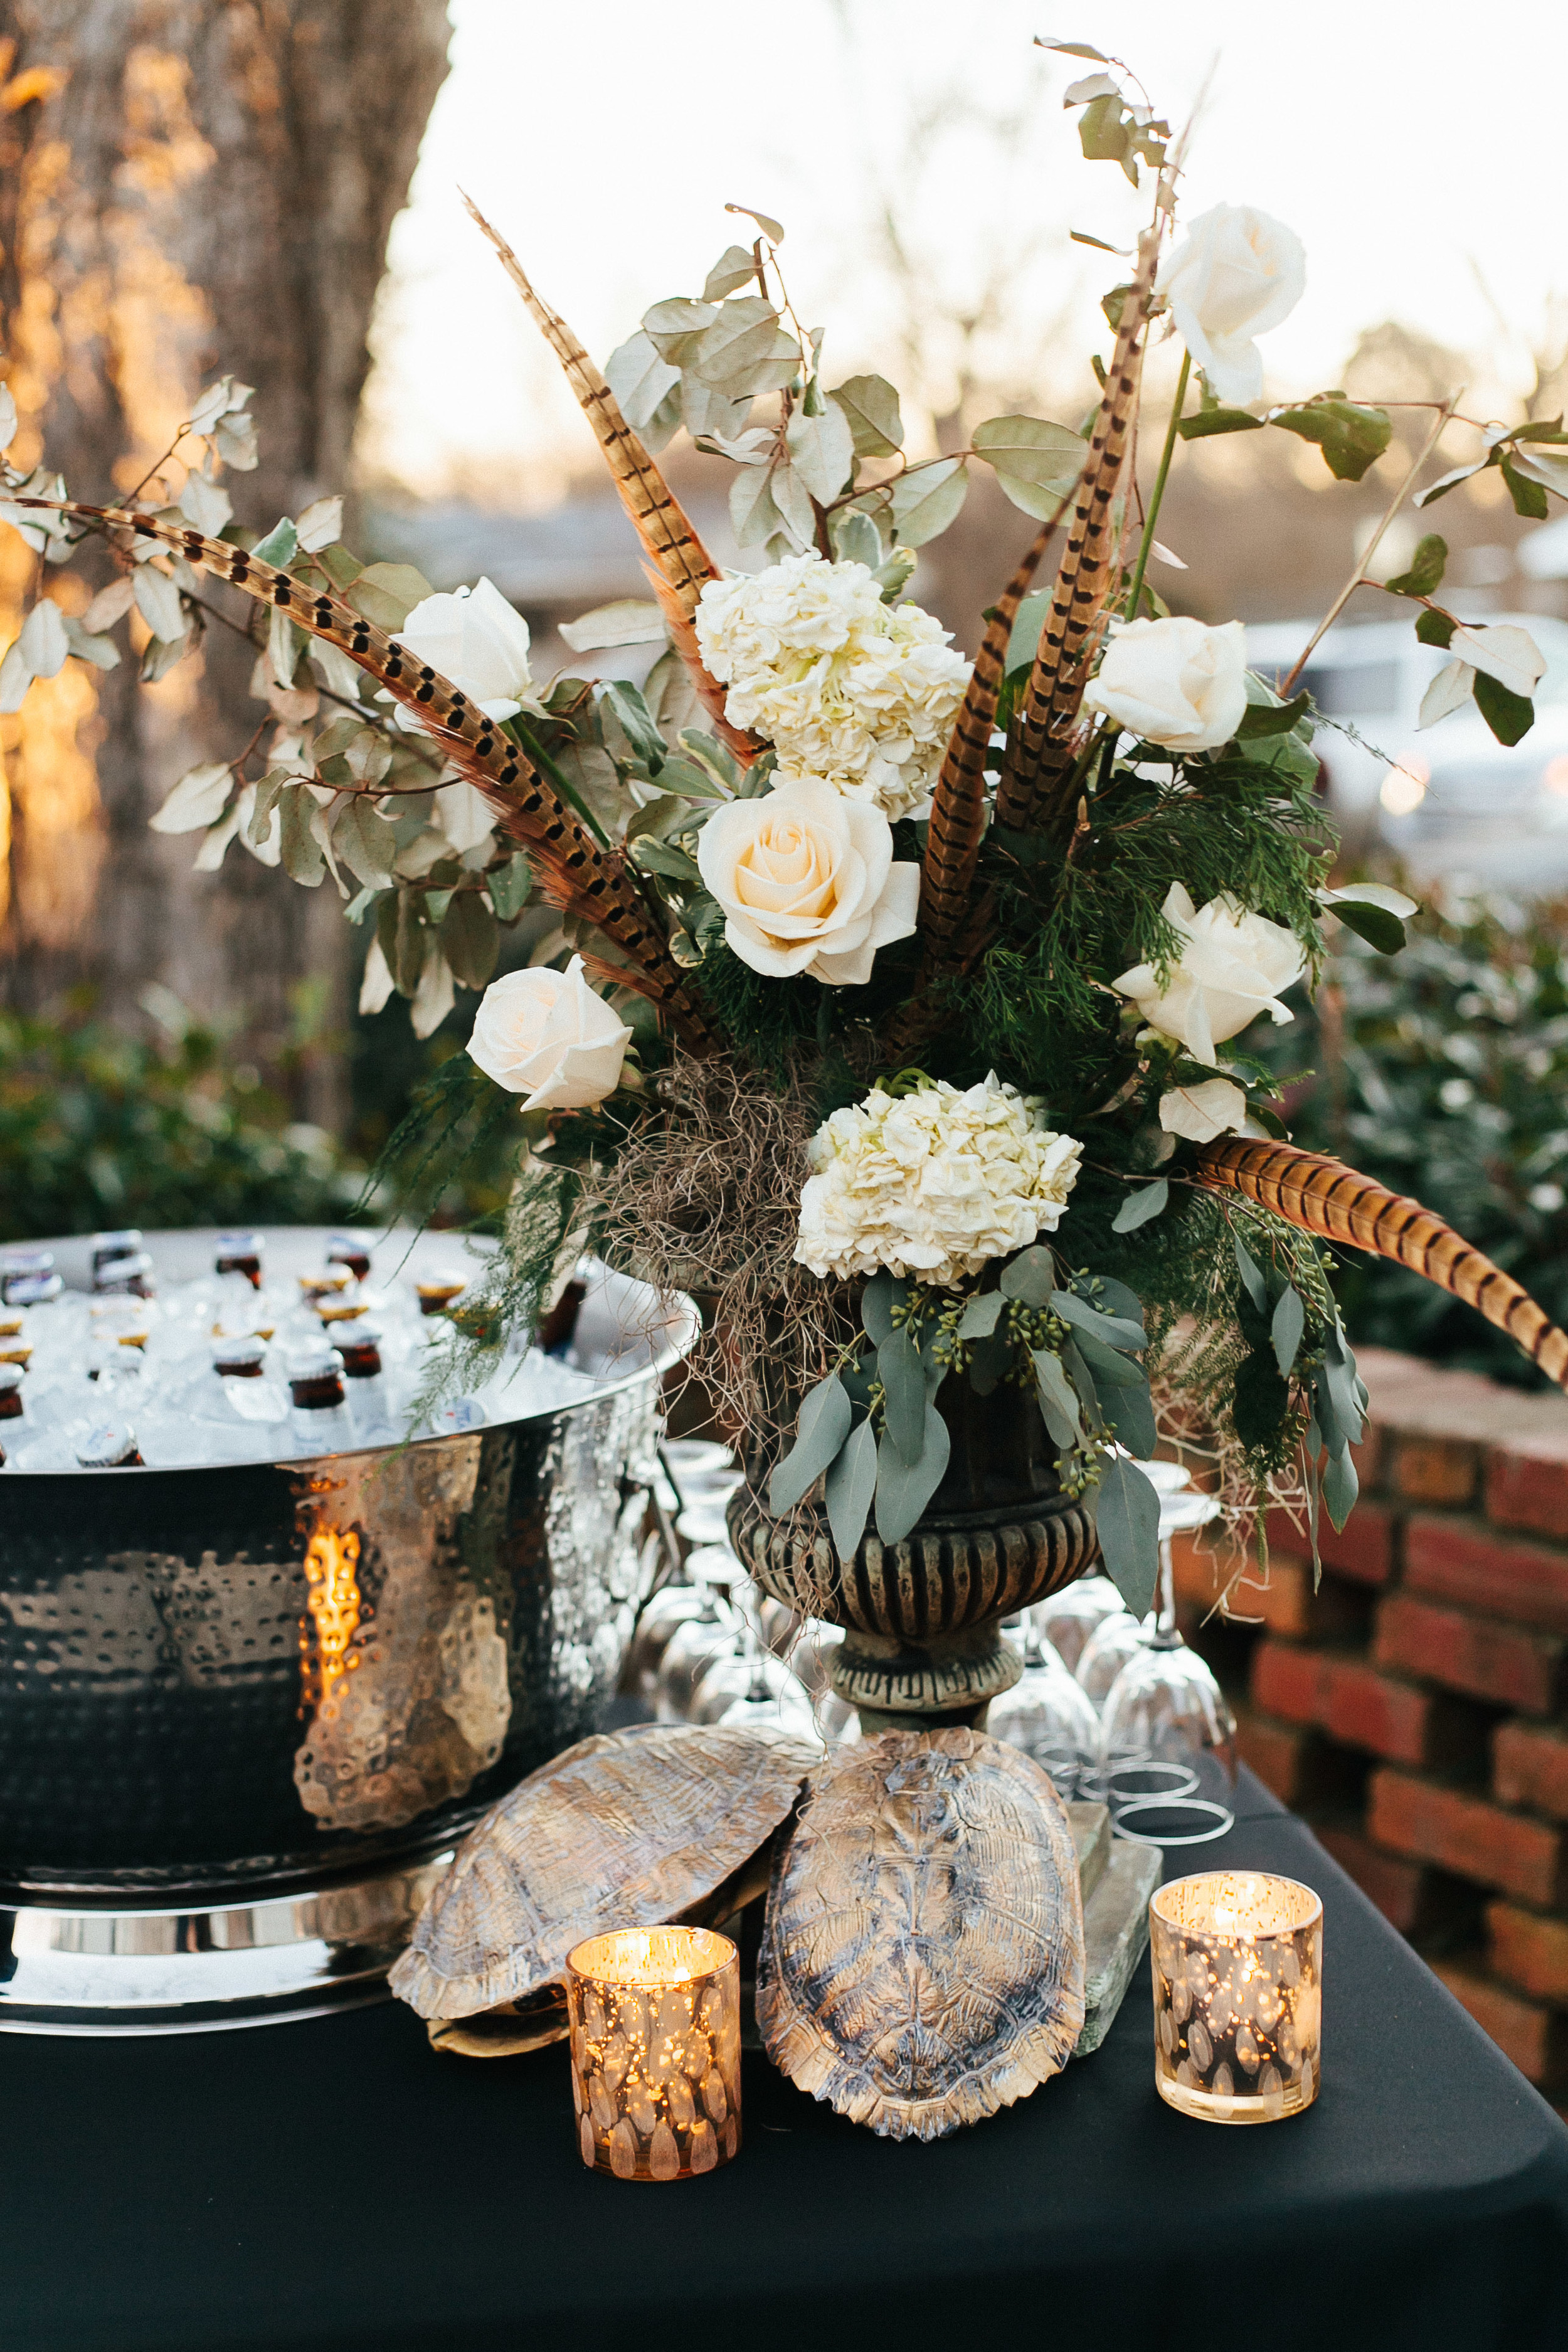 Lush centerpieces of white roses, hydrangeas, spanish moss and pheasant feathers with trutle shells